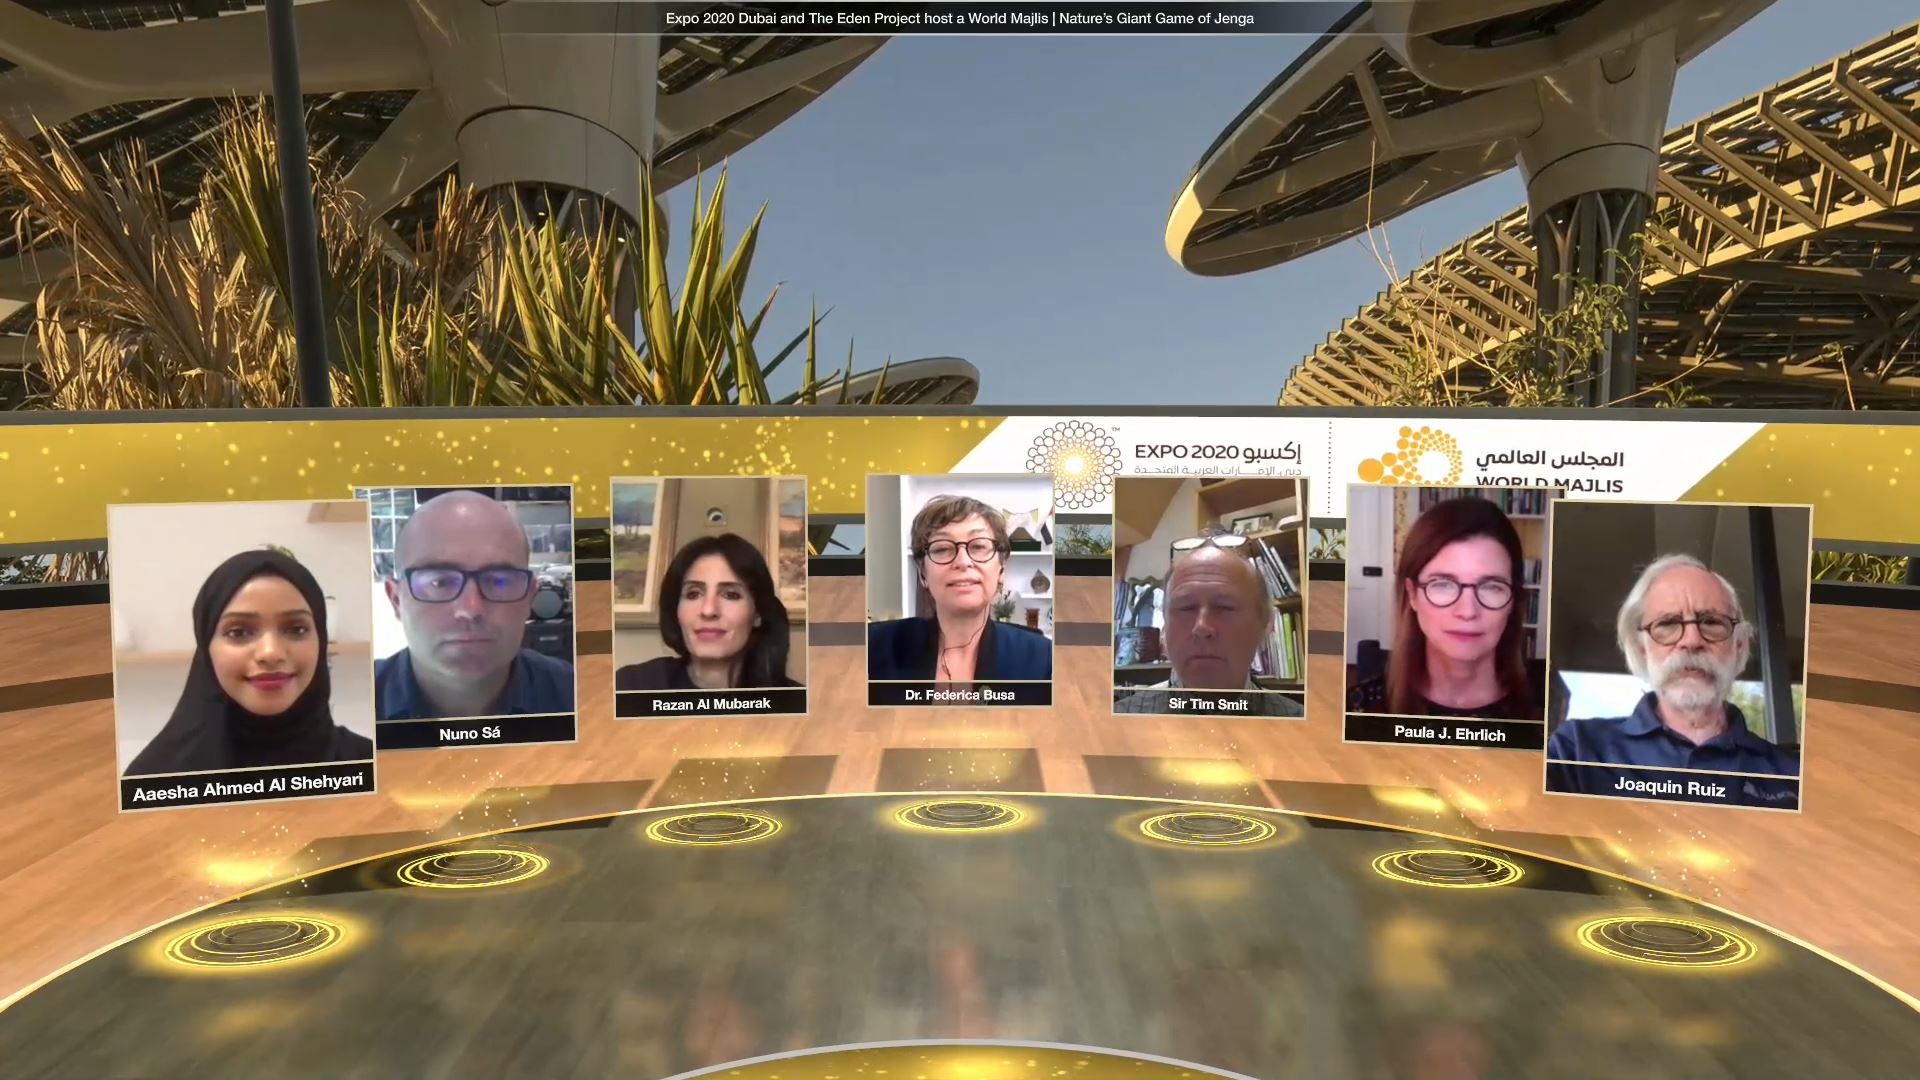 expo 2020 climate and biodiversity week virtual event panel discussion